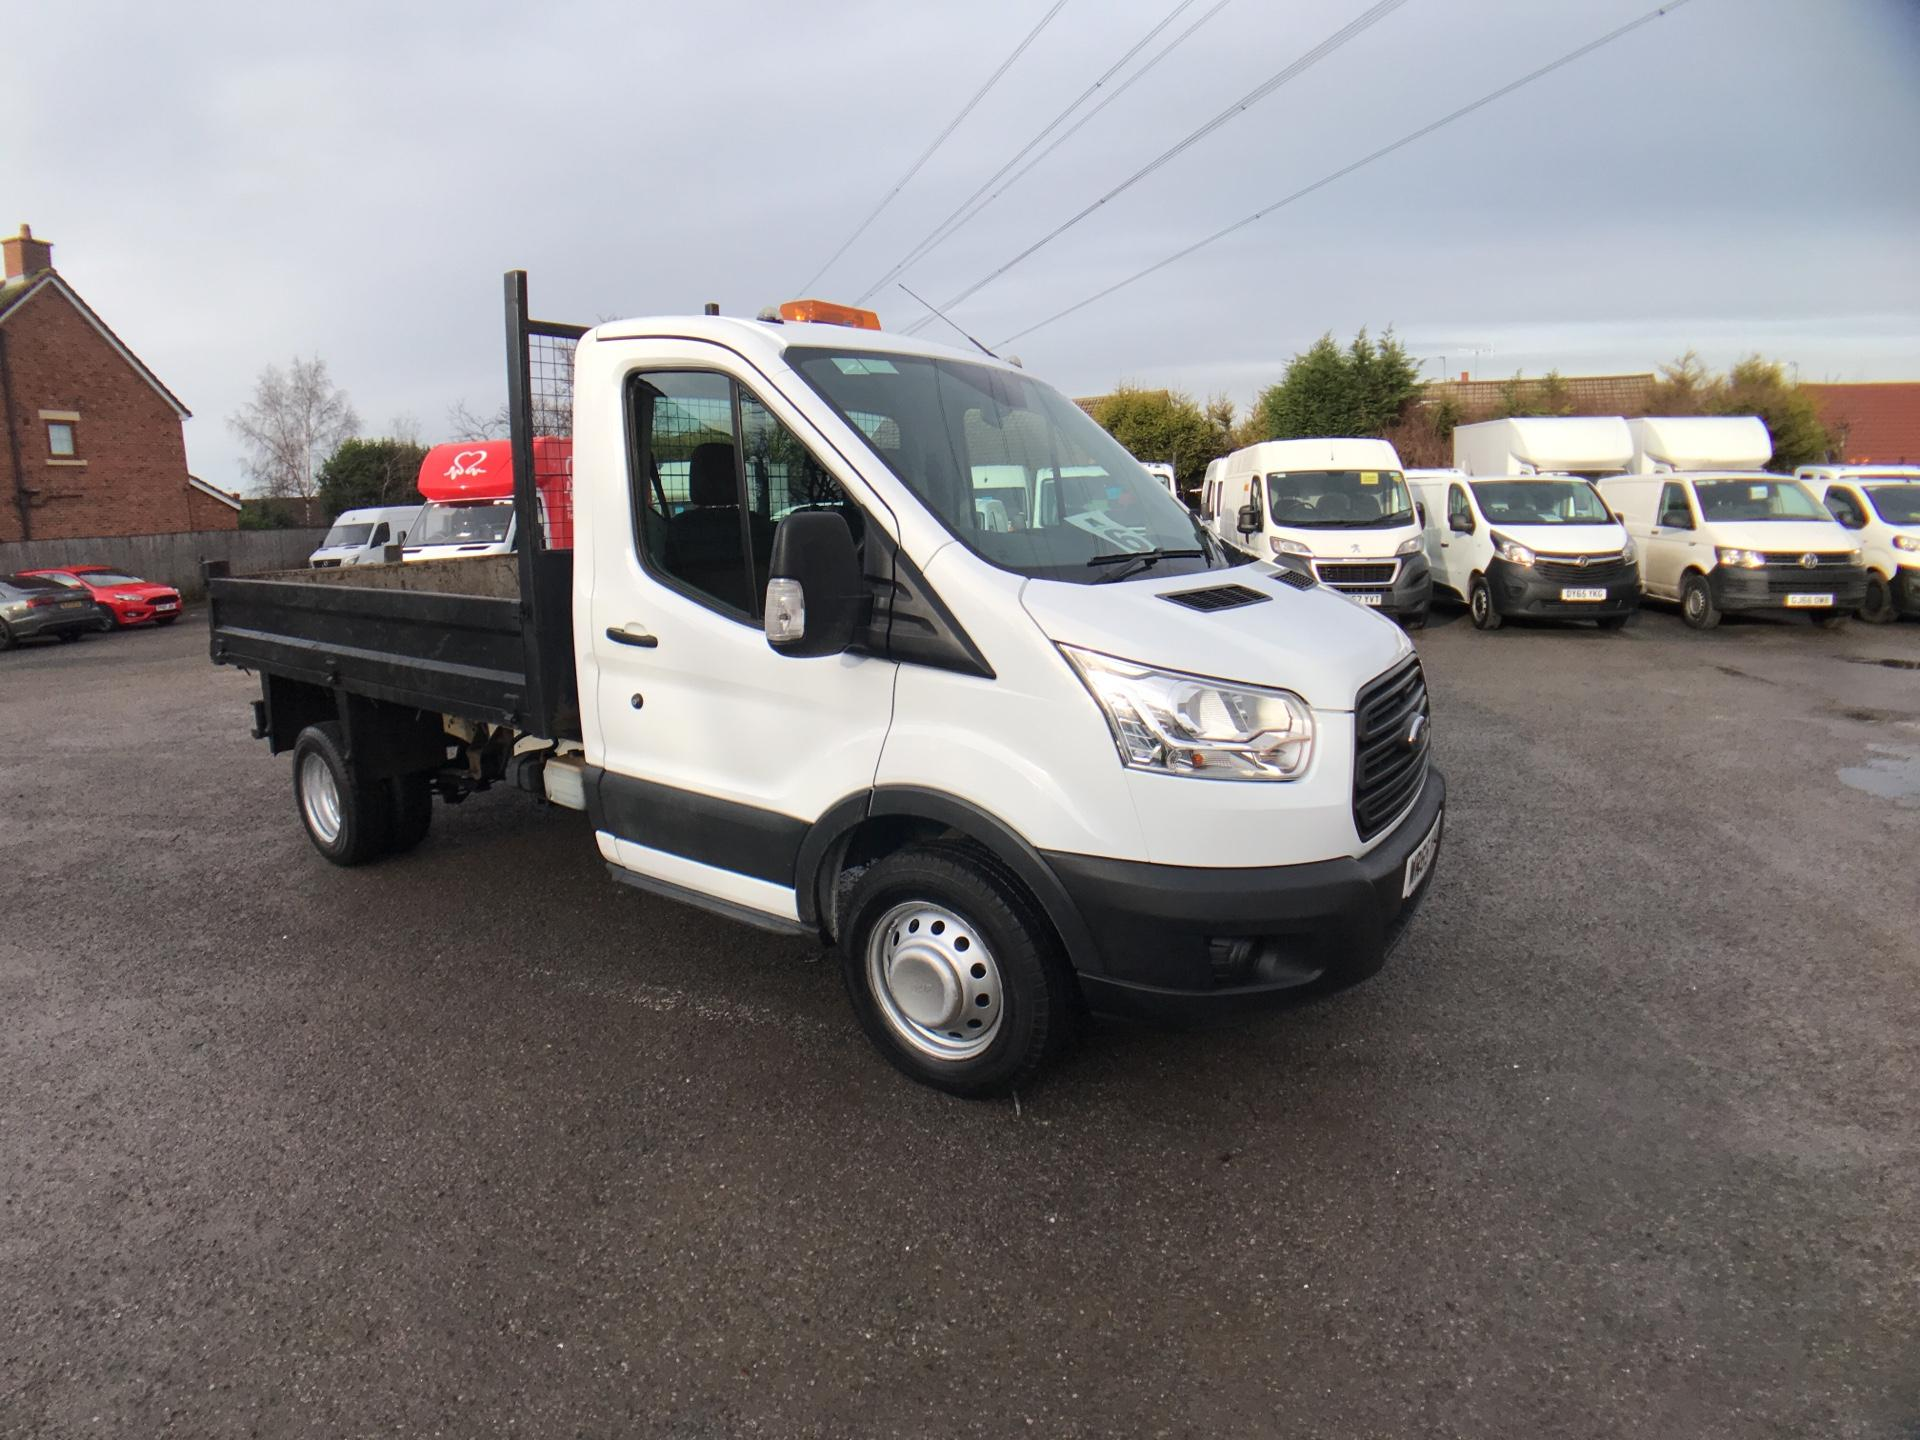 2016 Ford Transit 350 L2 SINGLE CAB TIPPER 125PS EURO 5 *VALUE RANGE VEHICLE CONDITION REFLECTED IN PRICE* (WR65VYK)